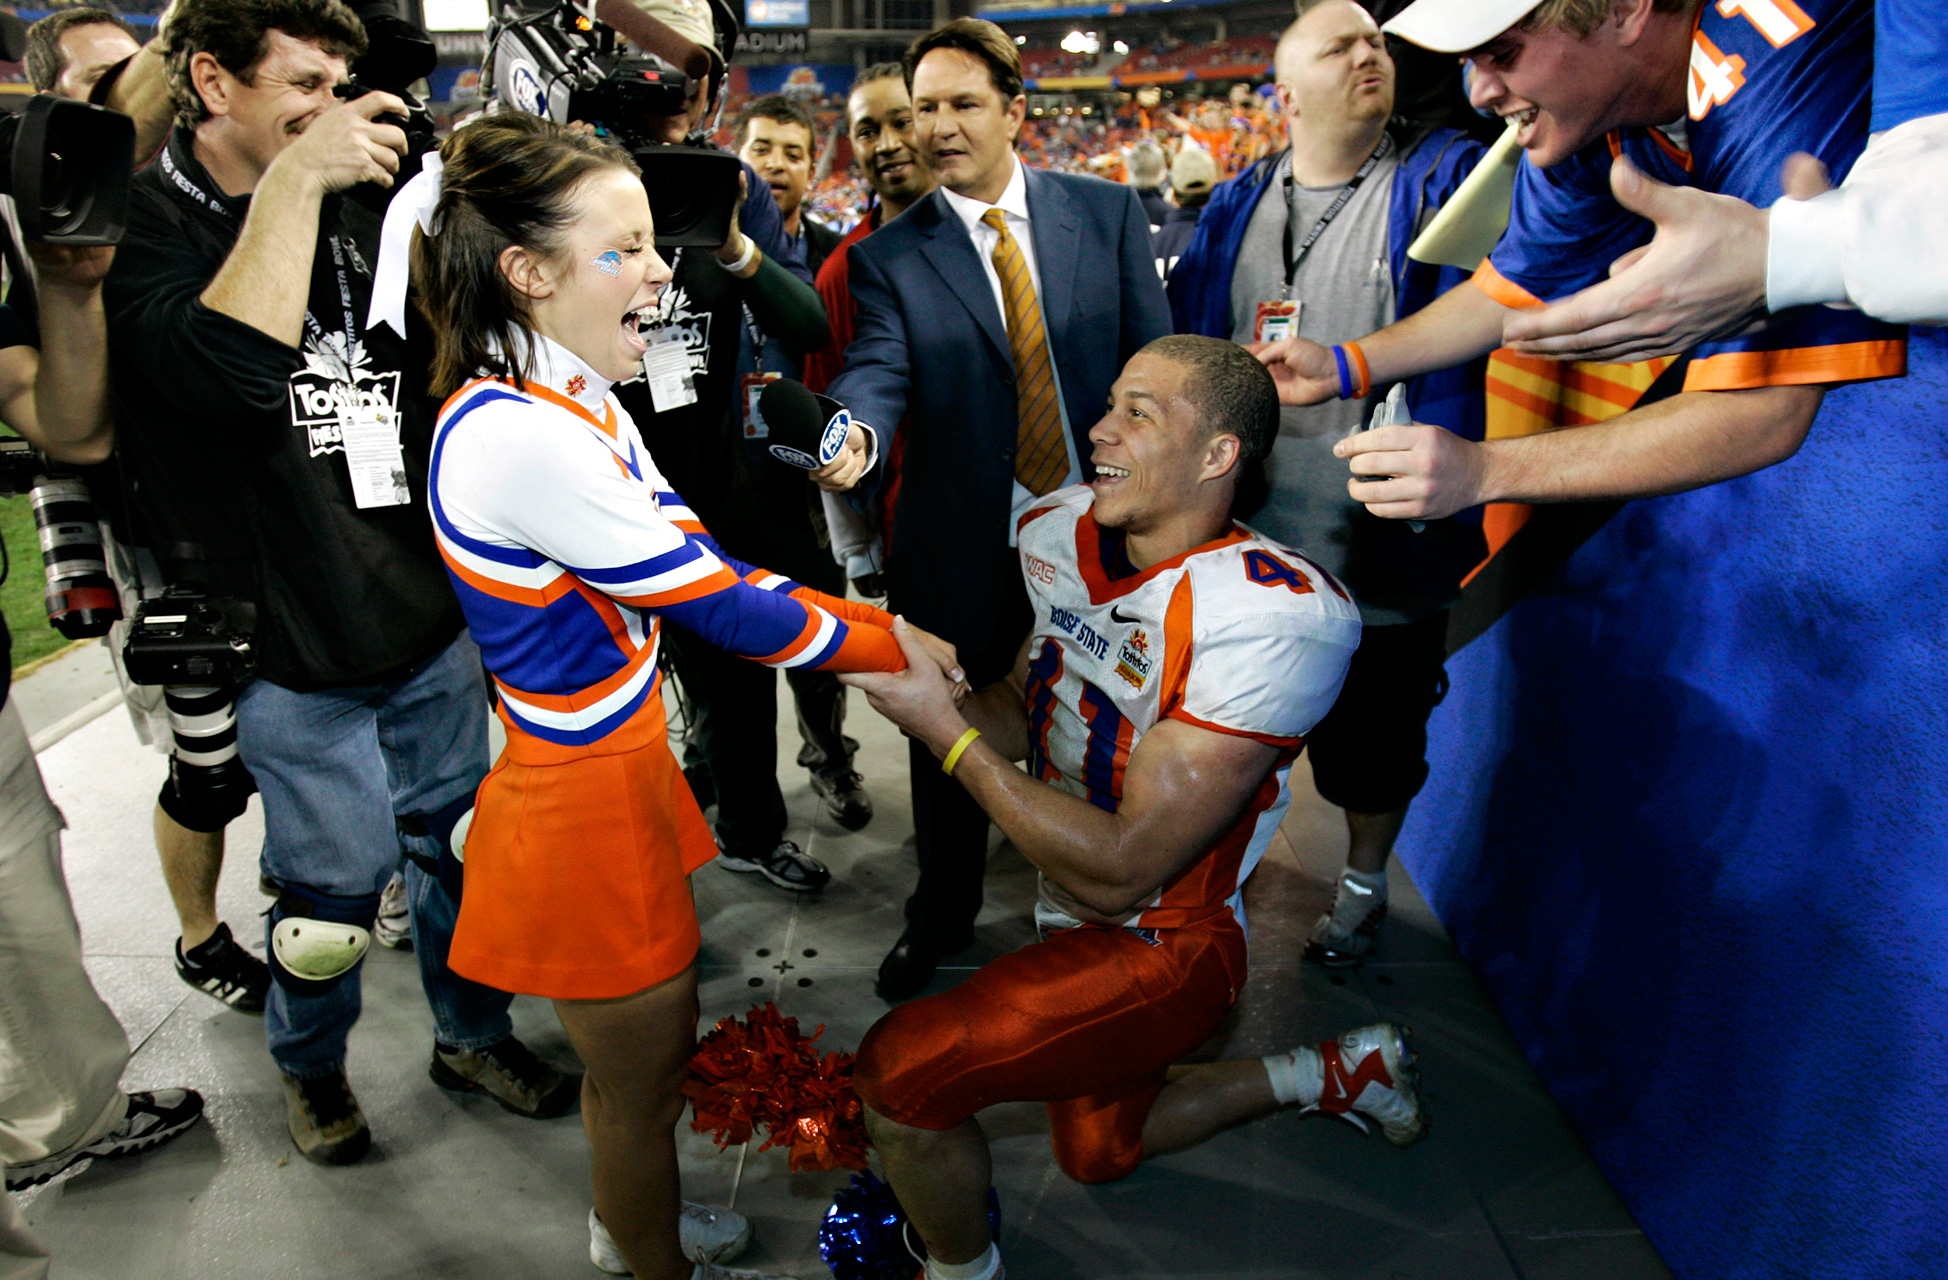 Boise State tailback Ian Johnson became the star of the 2007 Fiesta Bowl, not only for his role in the Broncos' upset over Oklahoma but also for his adorable proposal to girlfriend and cheerleader Chrissy Popadics immediately after the game.